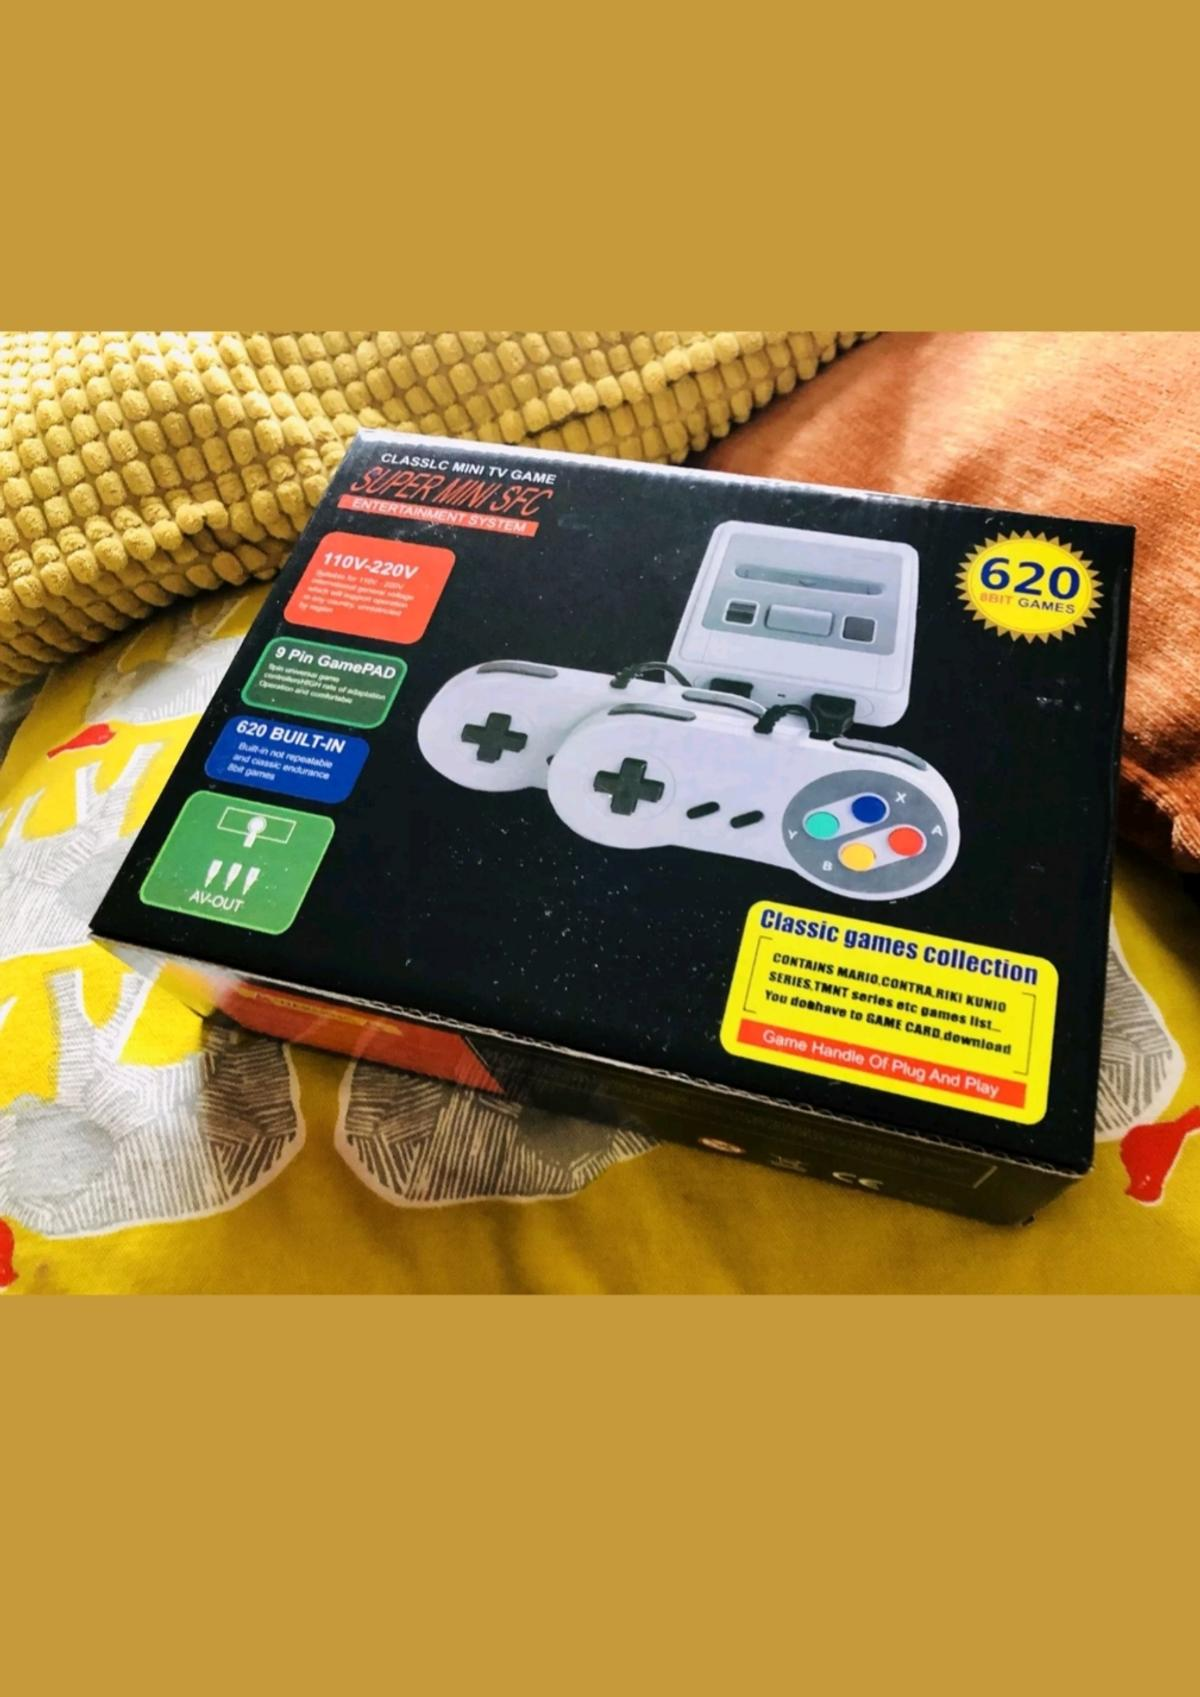 Mini Snes with 620 classic games